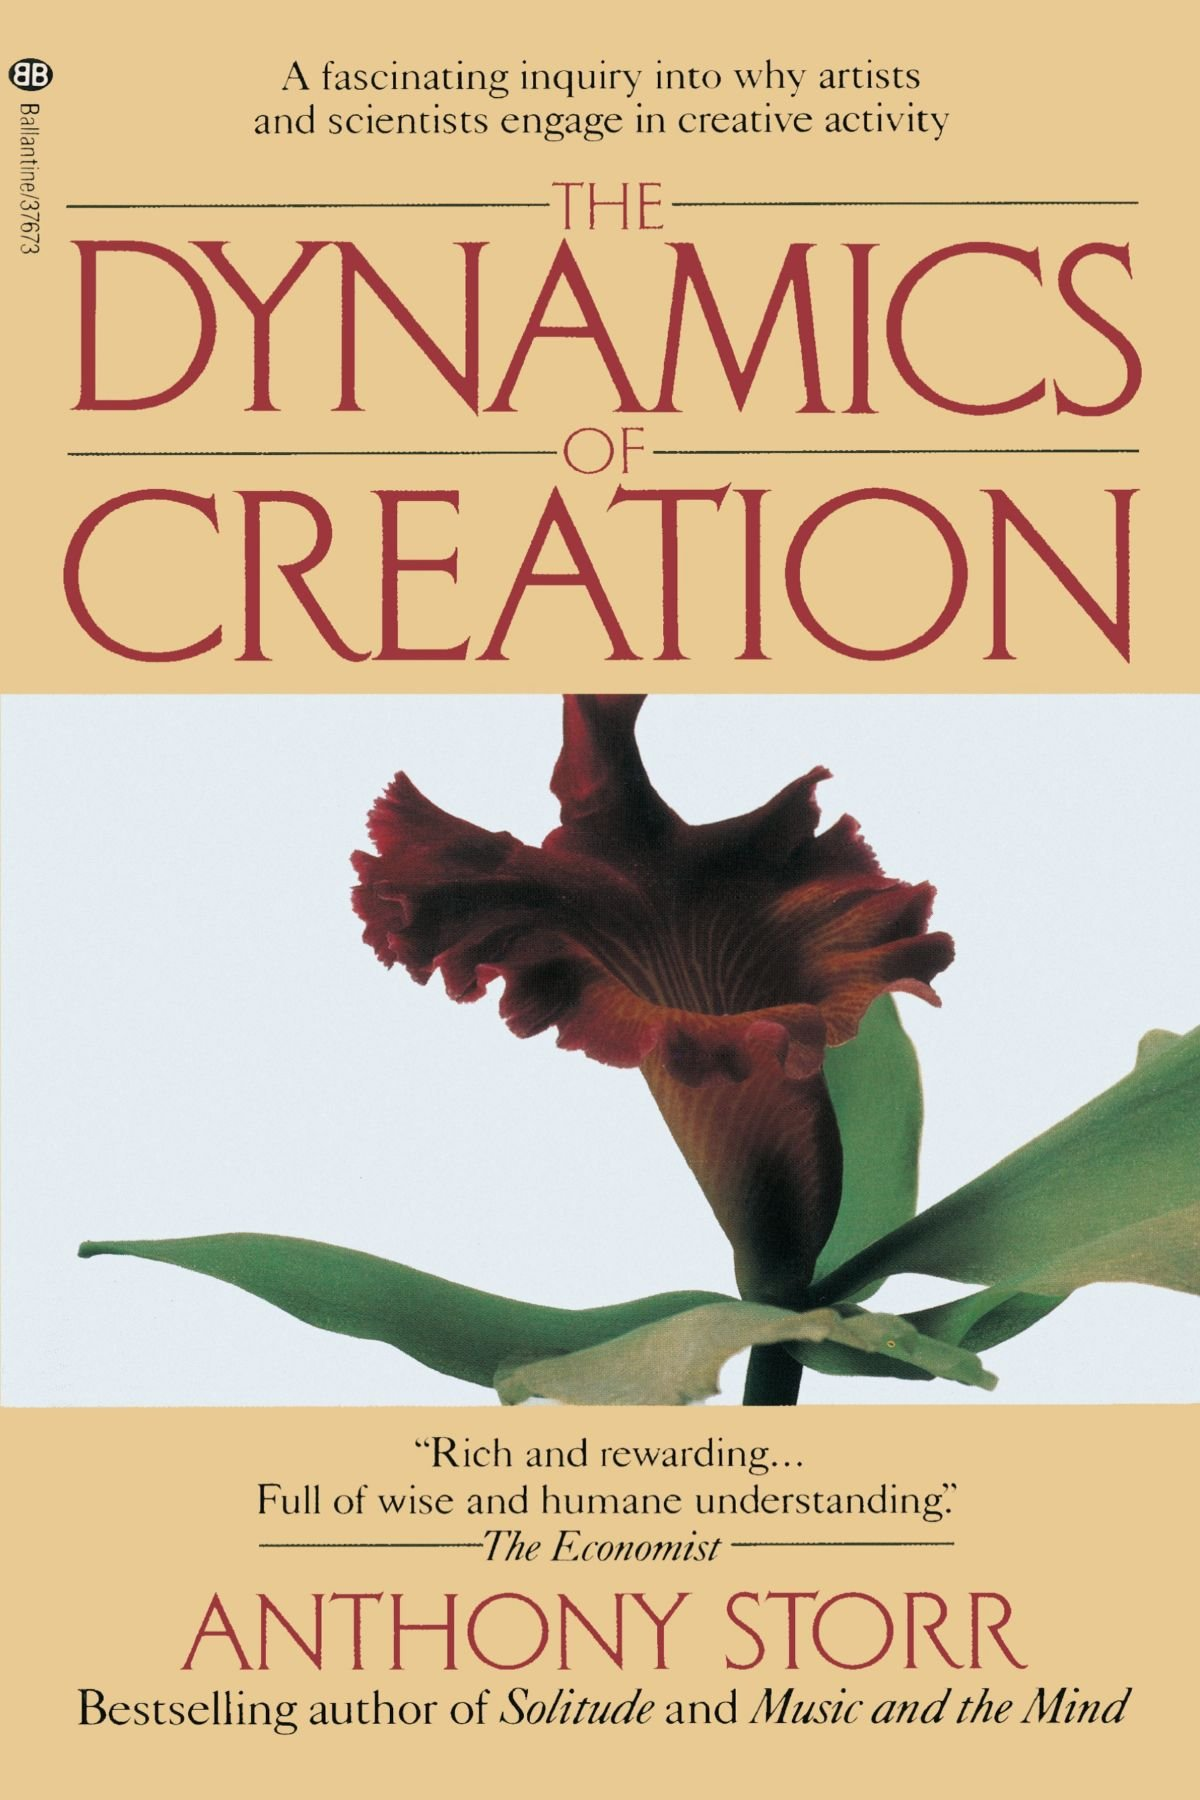 The dynamics of creation anthony storr 9780345376732 amazon the dynamics of creation anthony storr 9780345376732 amazon books fandeluxe Images